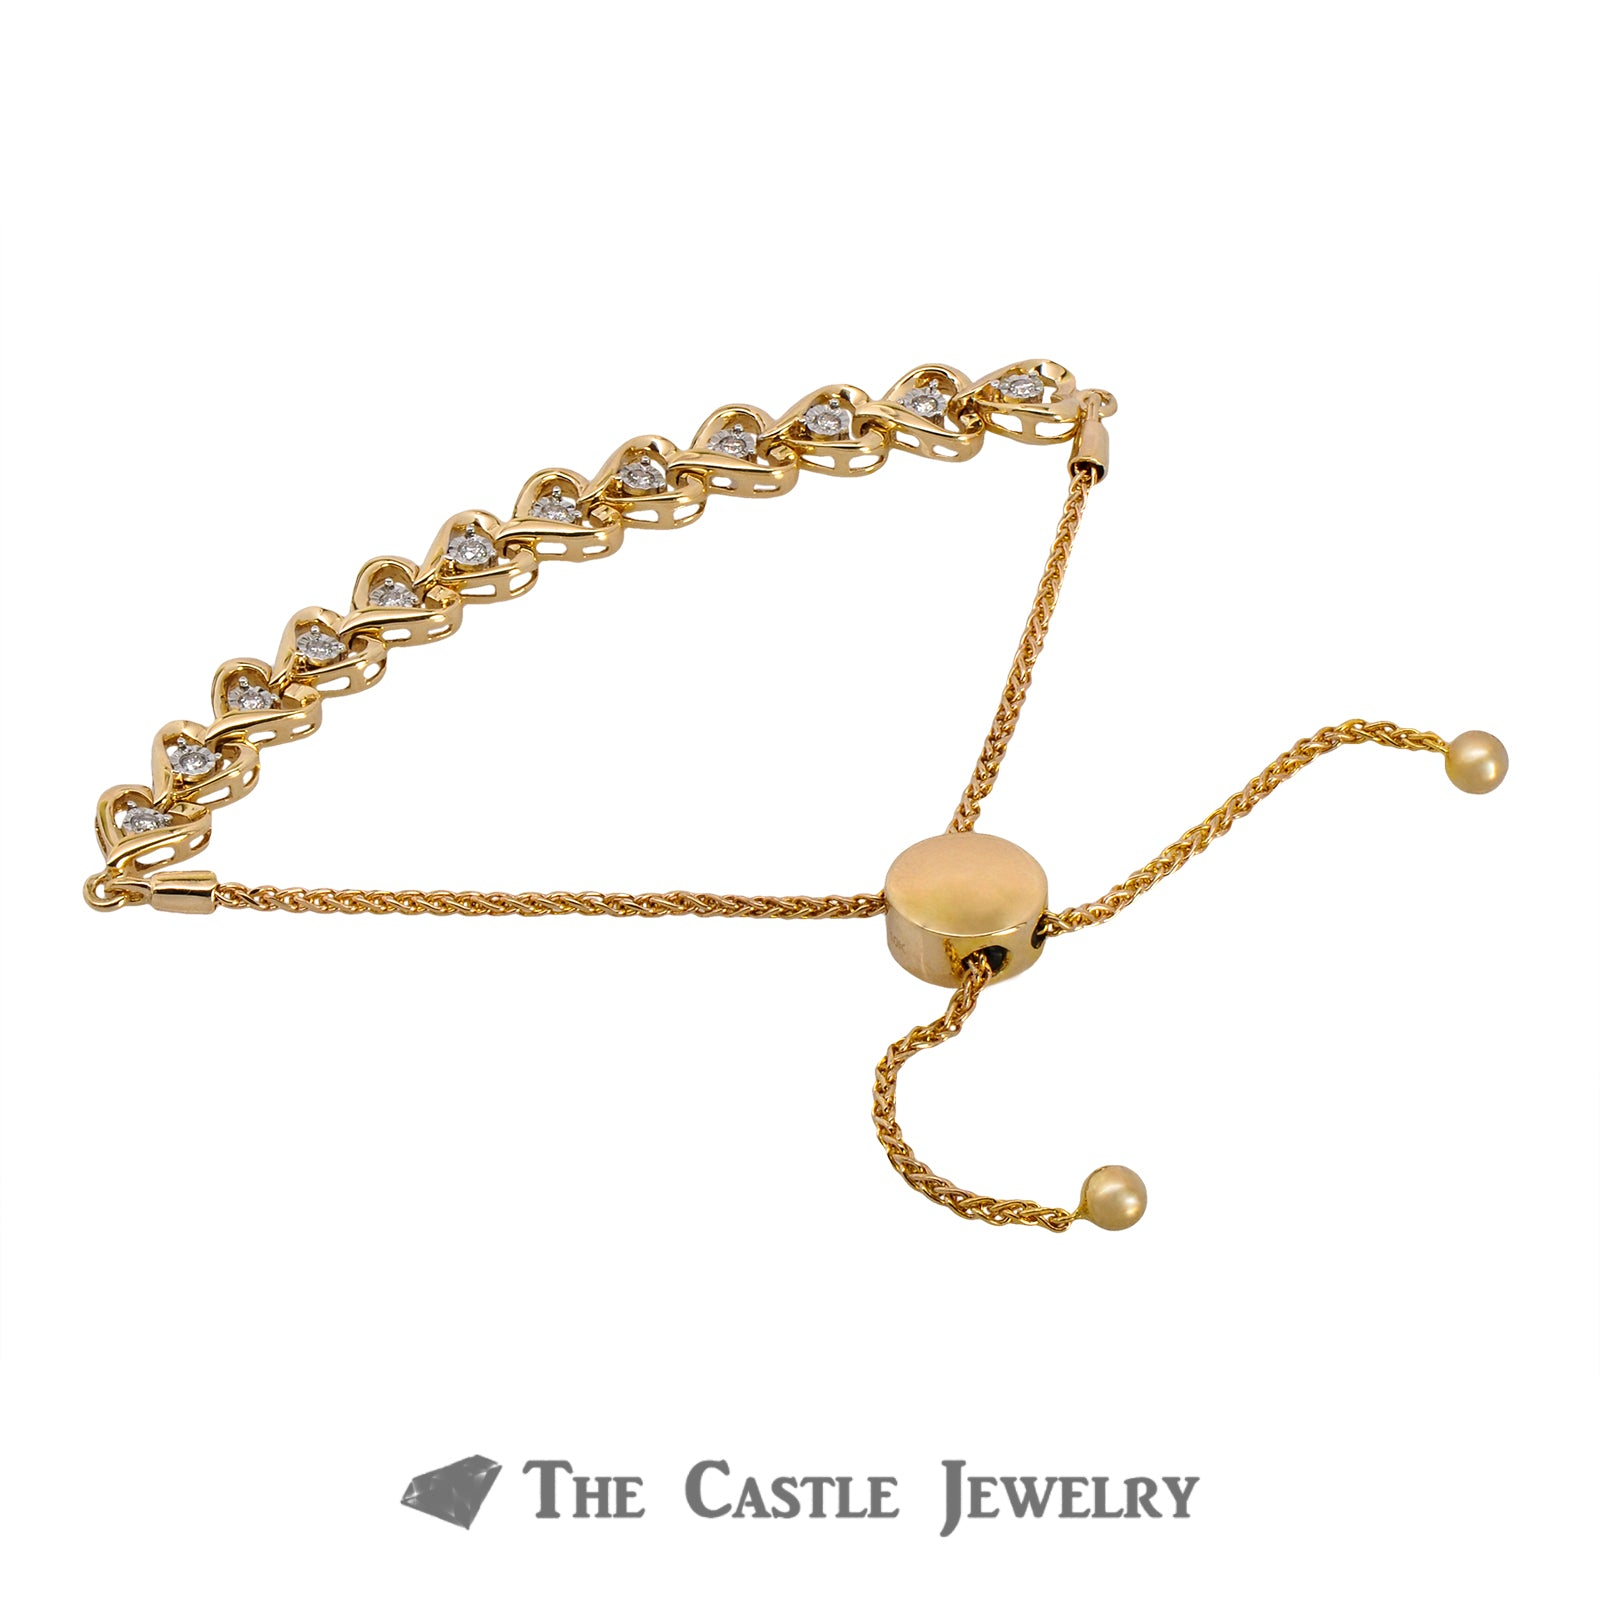 Adjustable Diamond Heart Design Bracelet  Crafted in 10K Yellow Gold-2